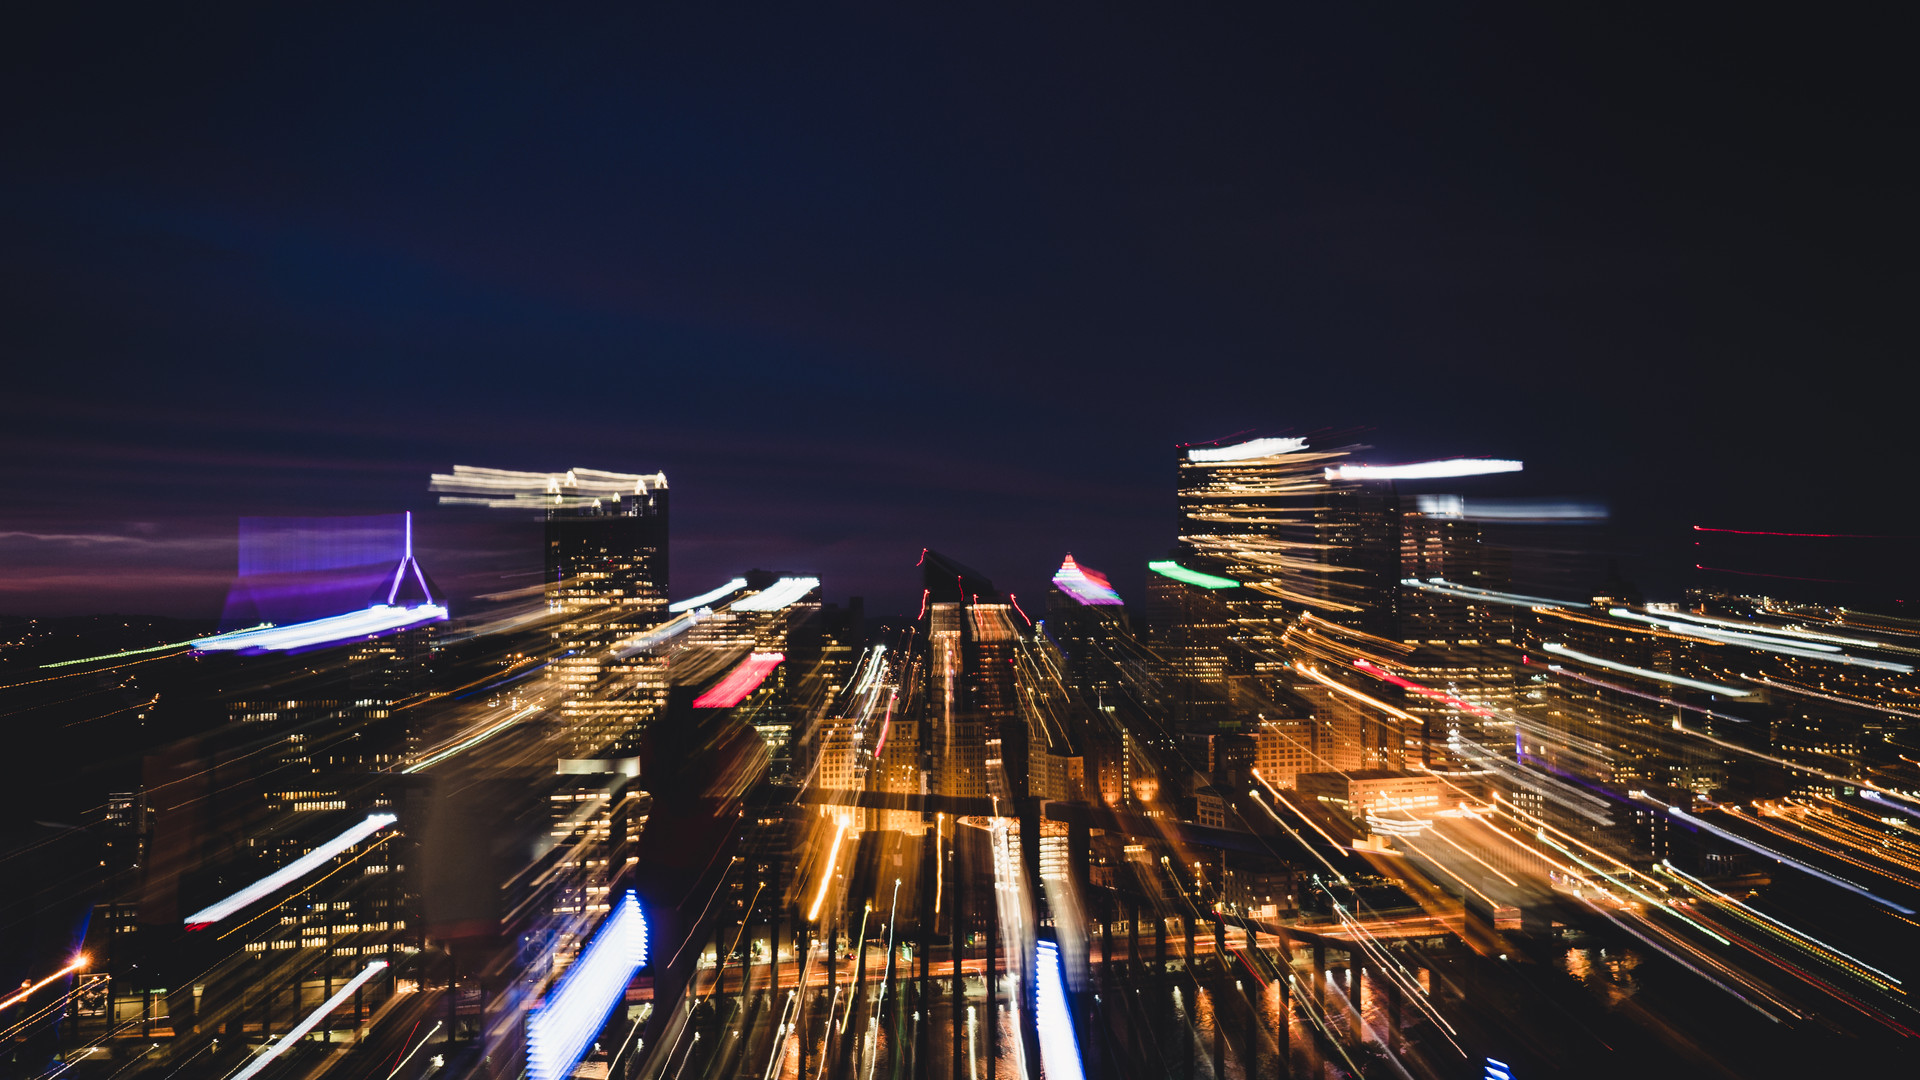 Abstract skyline of Pittsburgh at night